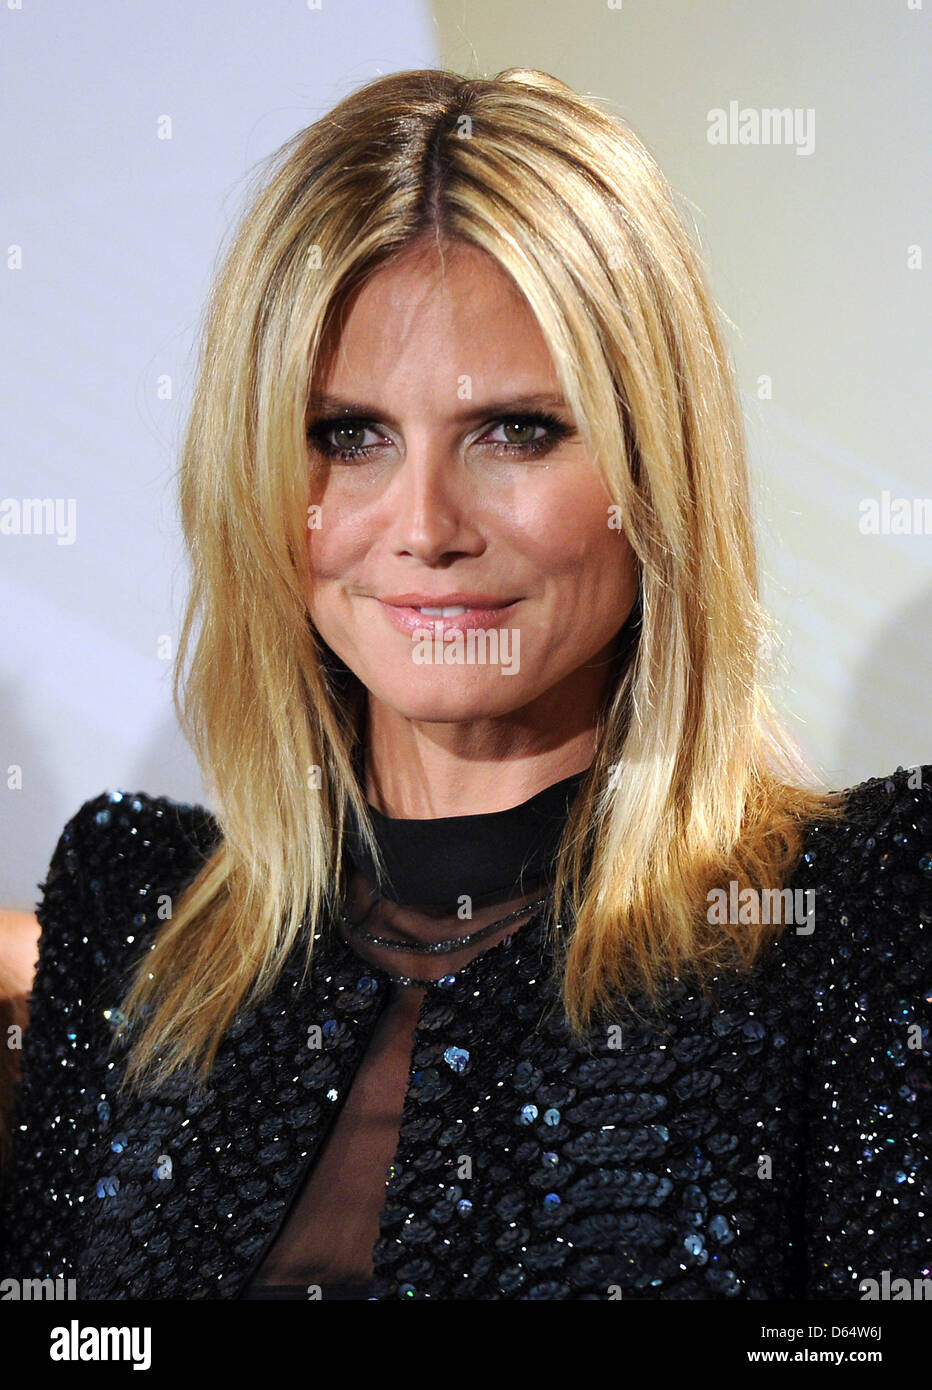 'Germany's next Topmodel' presenter and chief judge Heidi Klum poses for photographs at a press conference - Stock Image